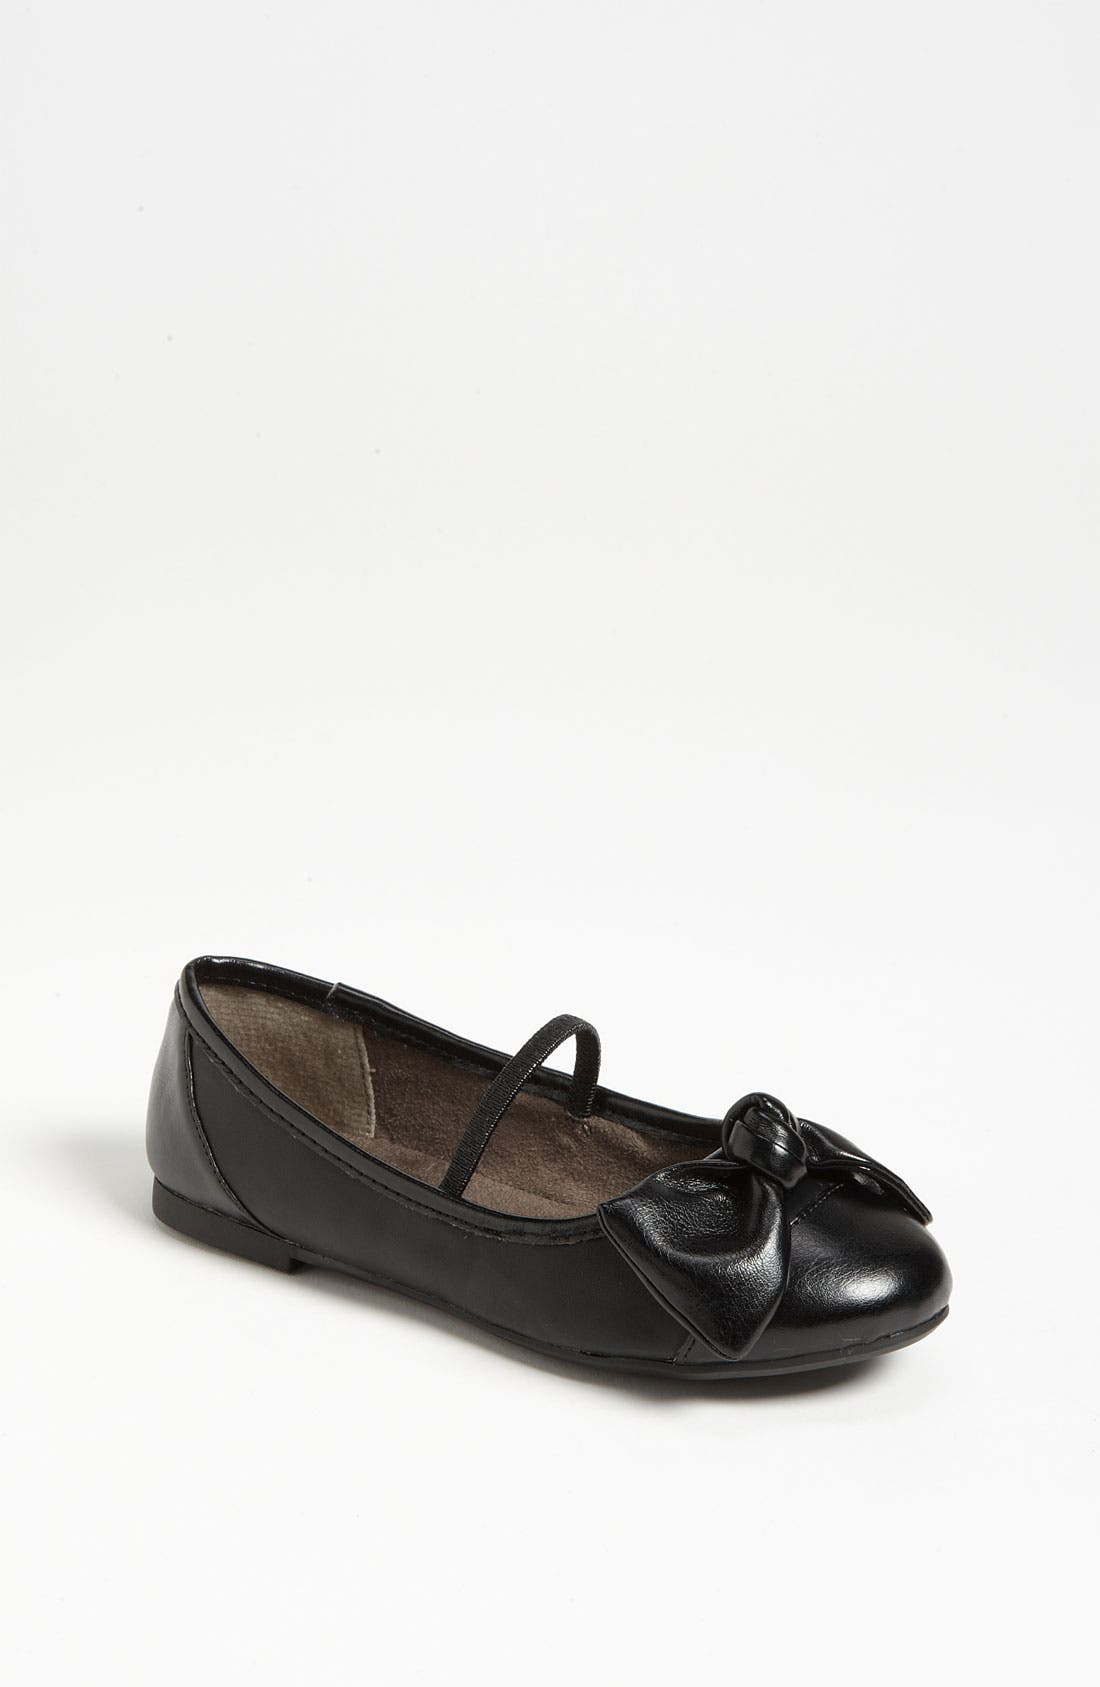 Alternate Image 1 Selected - Kenneth Cole Reaction 'Dip Up 2' Flat (Toddler)